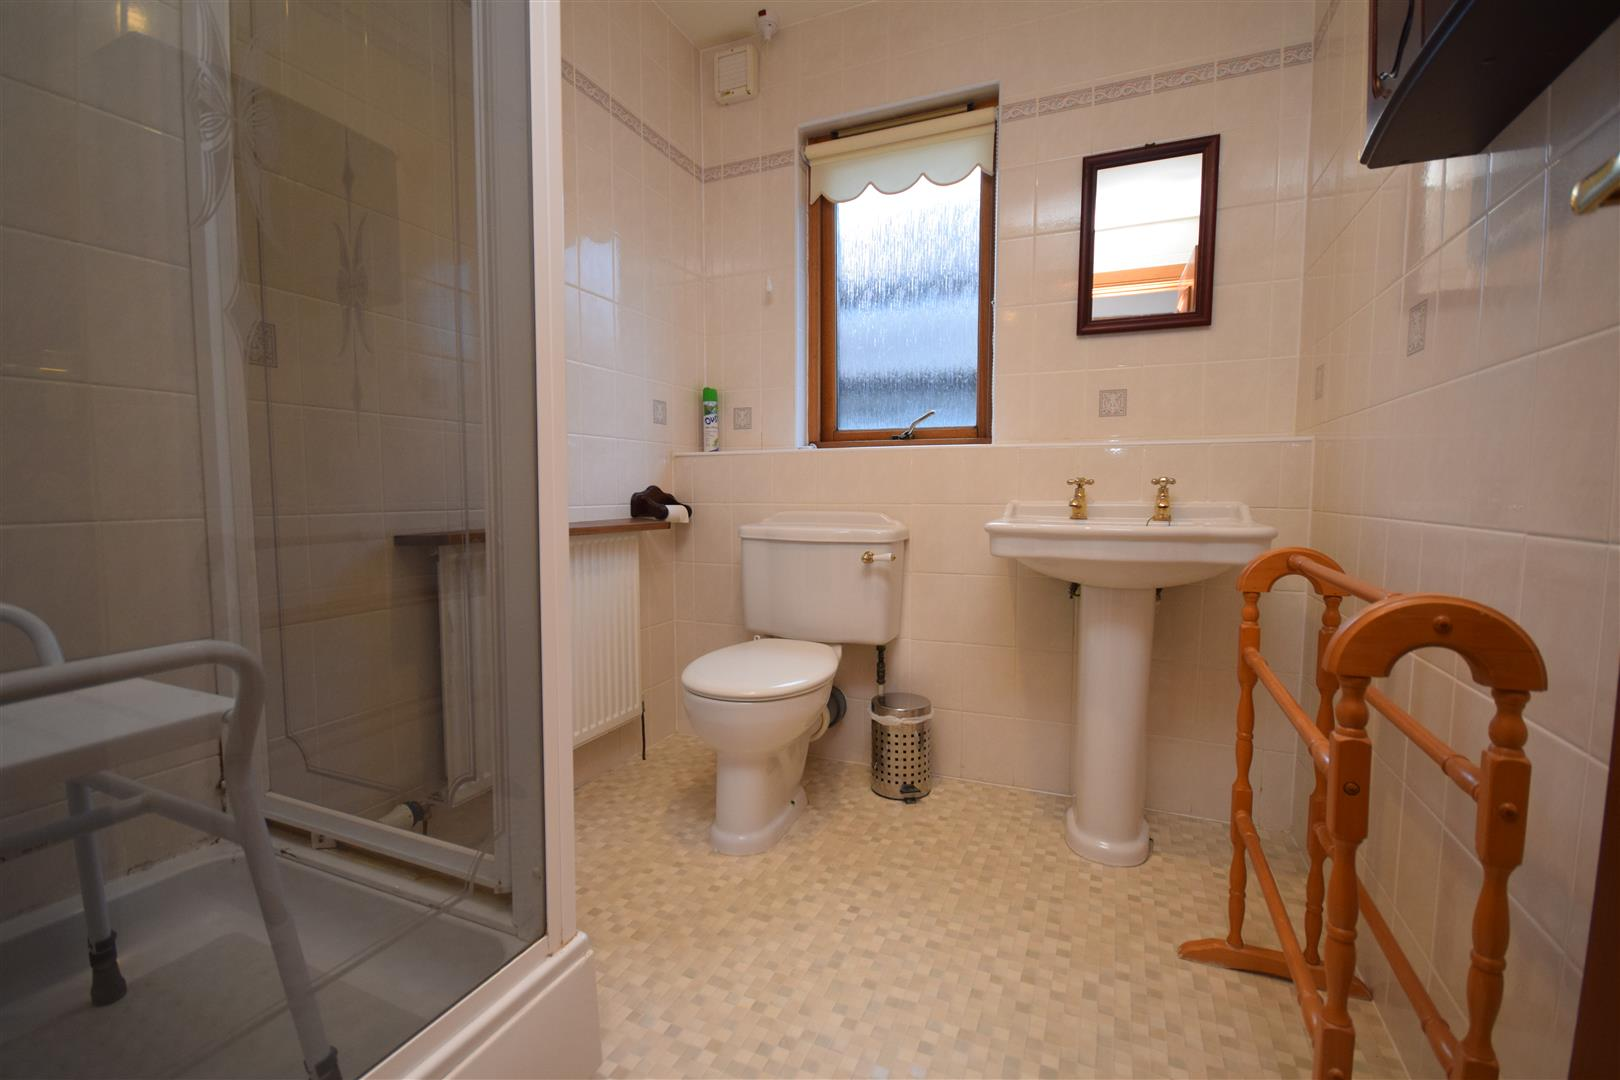 Flat 4, Riverview Park, Dundee Road, Perth, Perthshire, PH2 7BD, UK